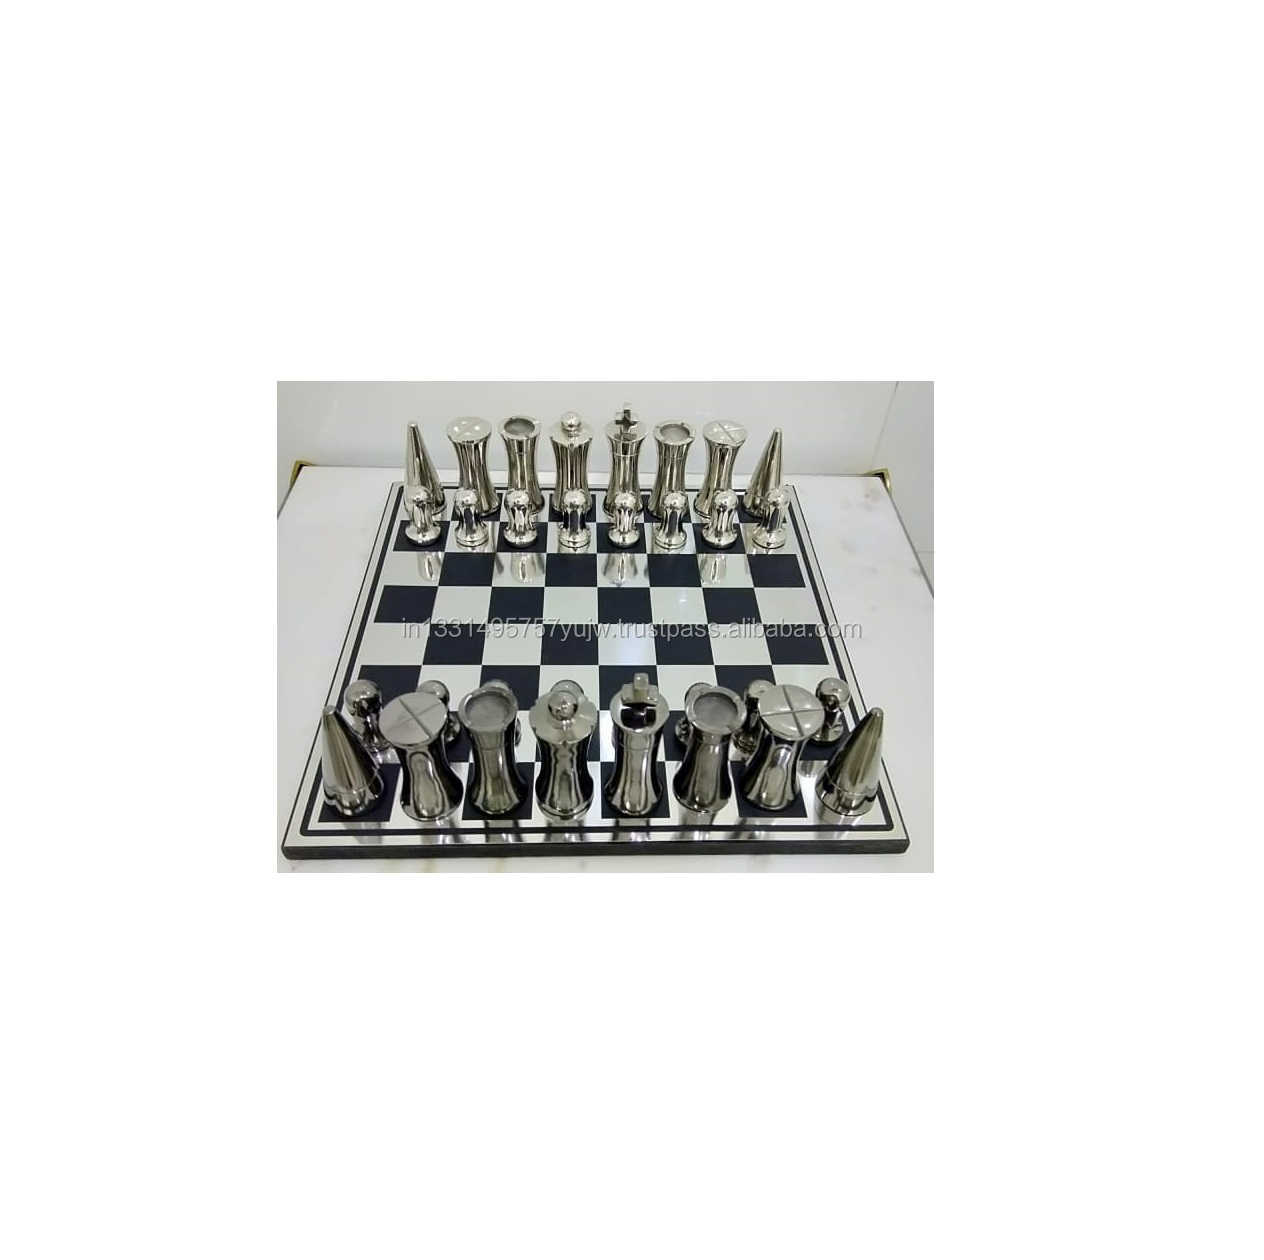 Wooden chess design with Metal players chess board set